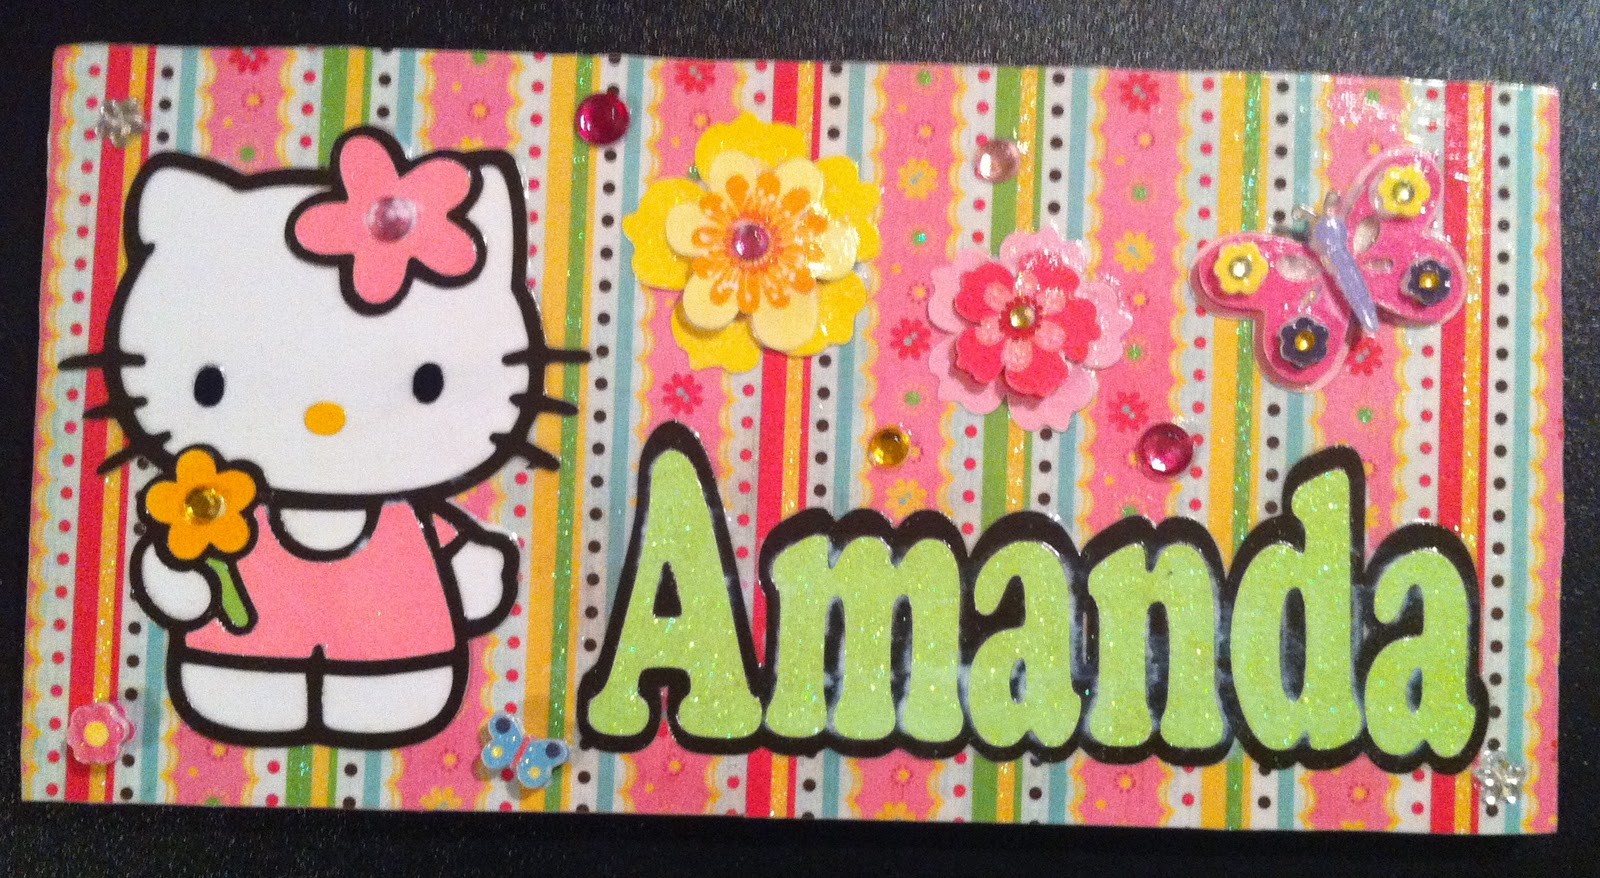 Christas creations hello kitty plaques hello kitty plaques i used hello kitty greetings cricut cartridge m4hsunfo